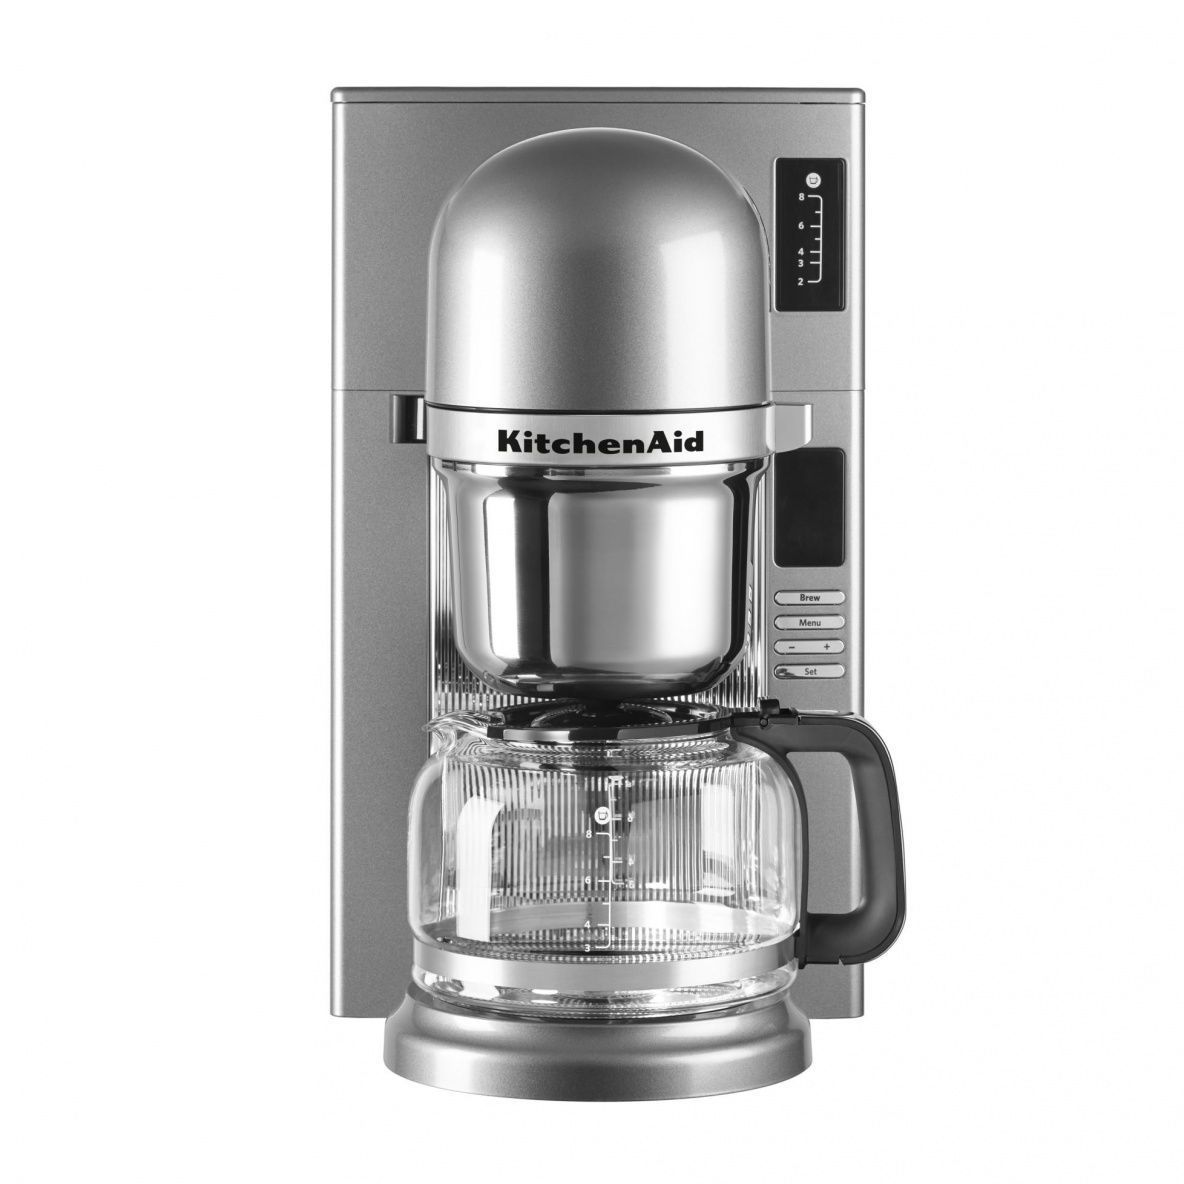 KitchenAid 5KCM0802 Pour Over Coffee Brewer KitchenAid High-Tech AmbienteDirect.com